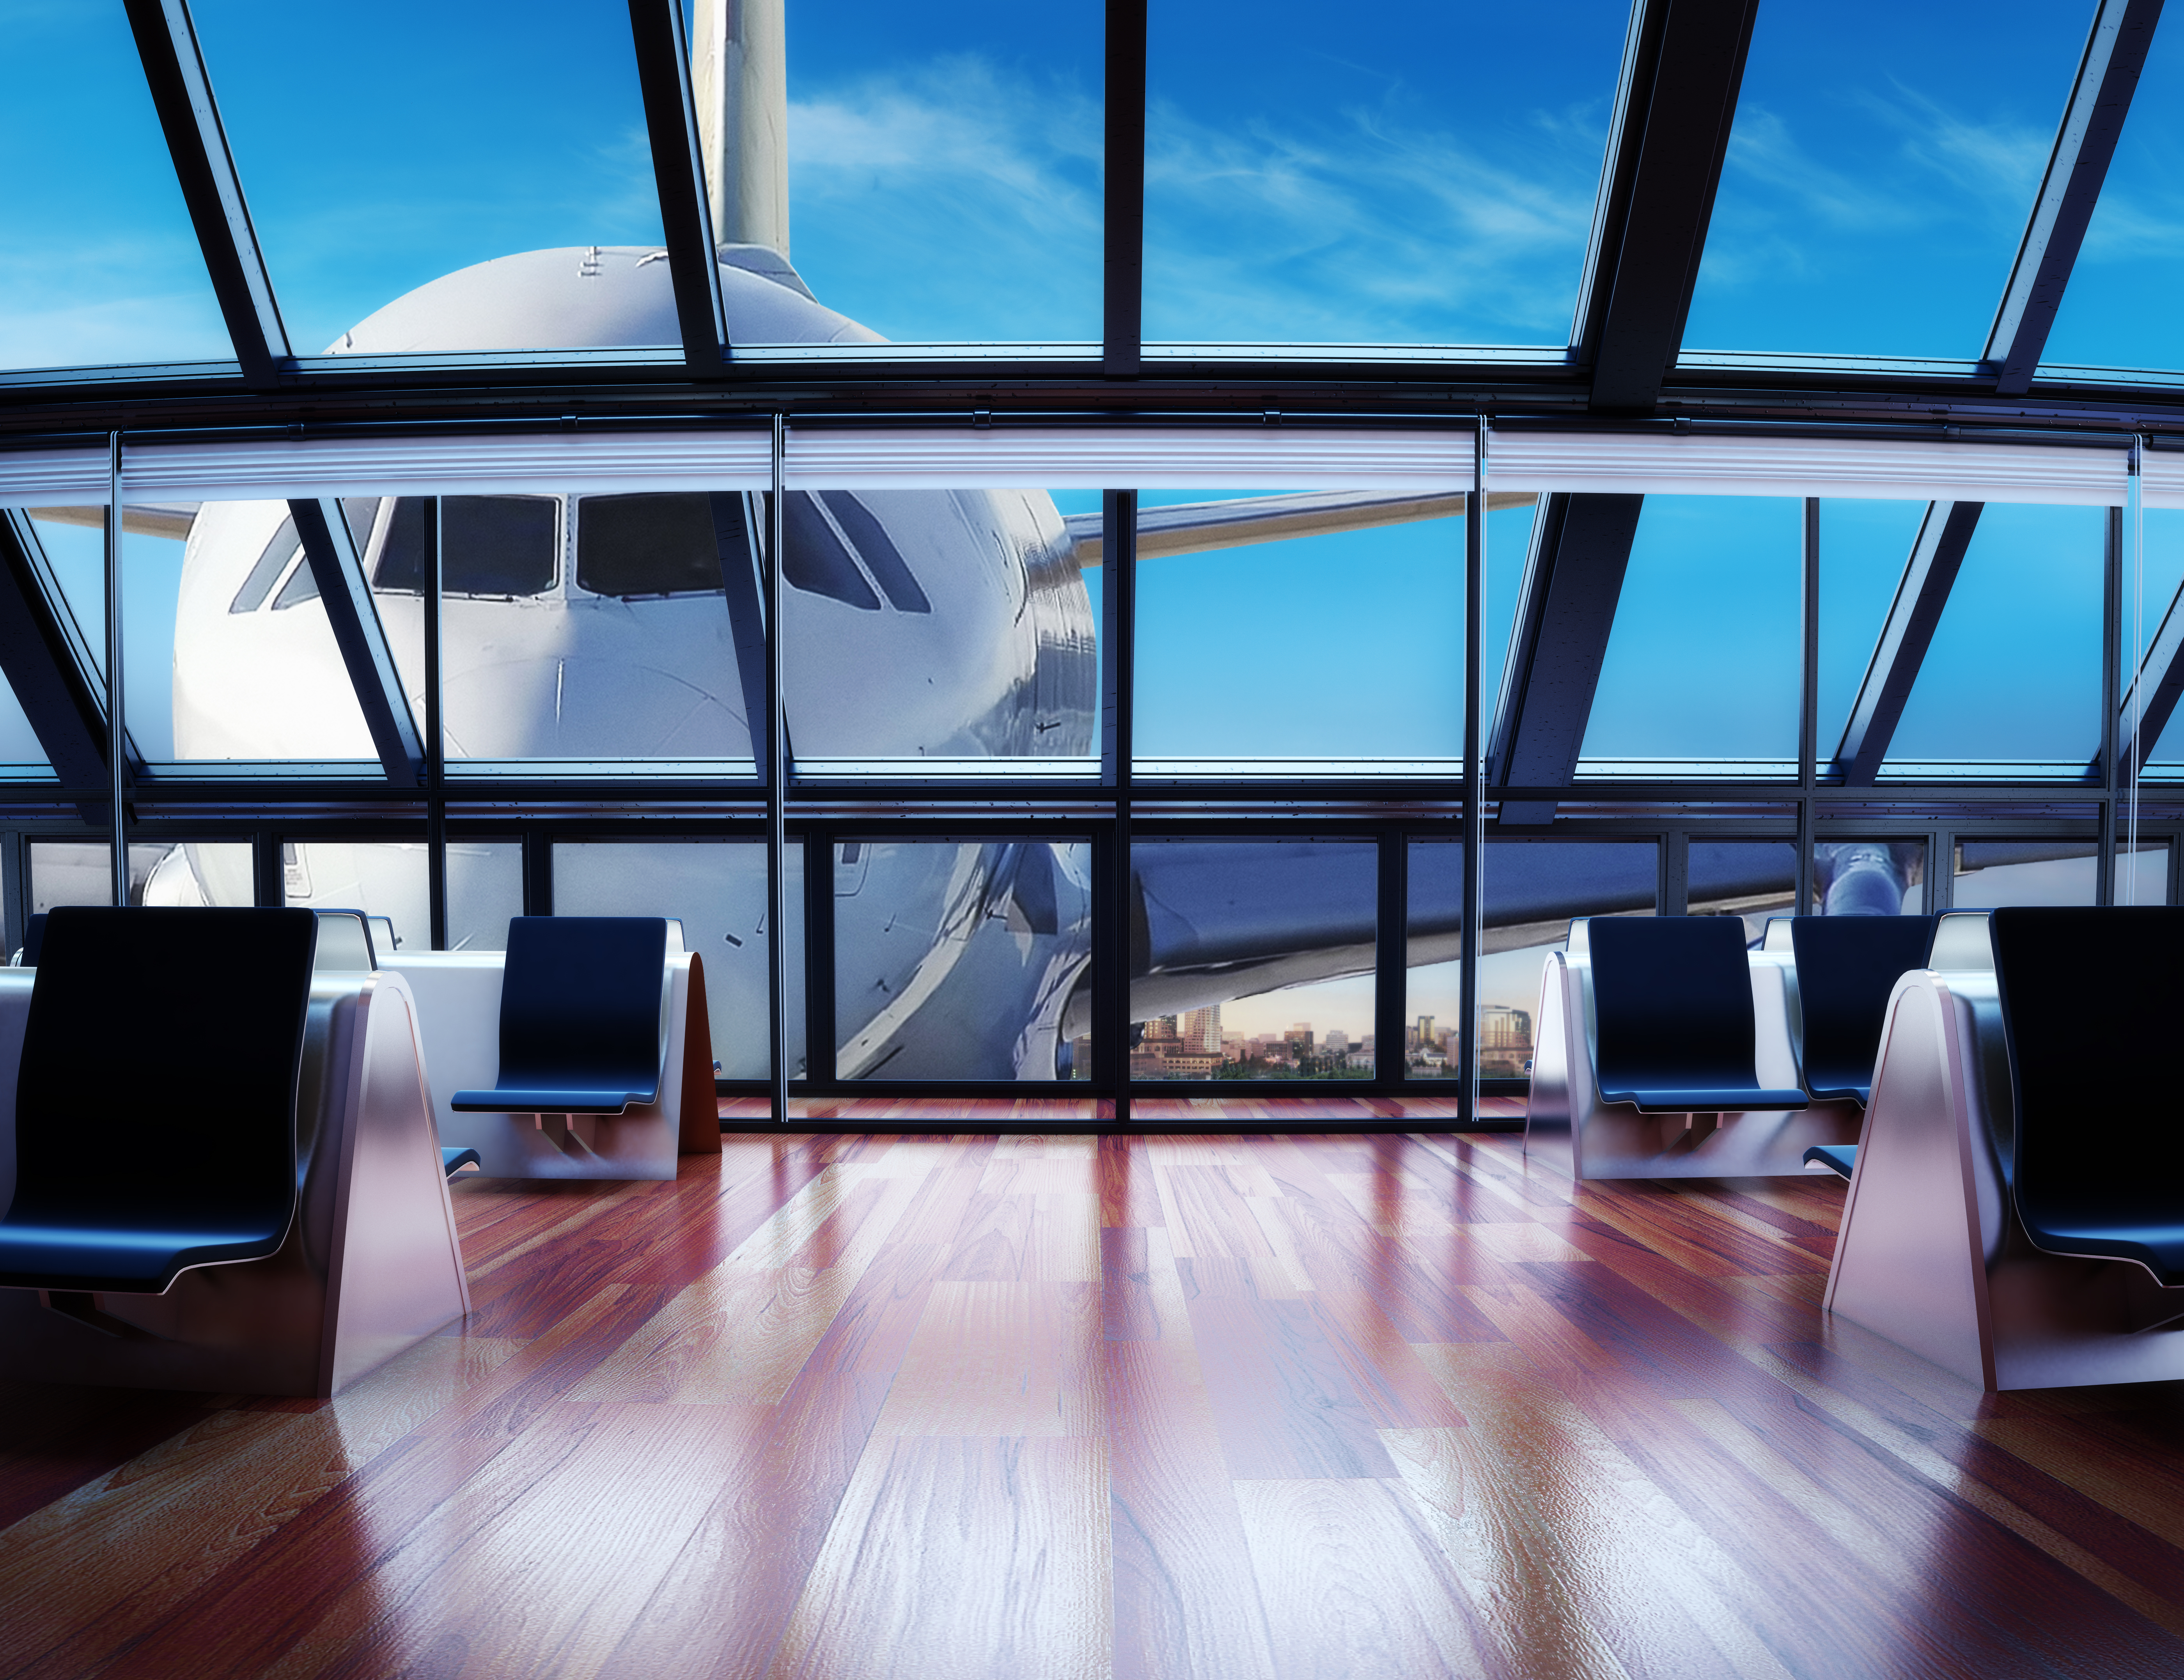 Airport lounges are some of the true luxuries of first class on the ground